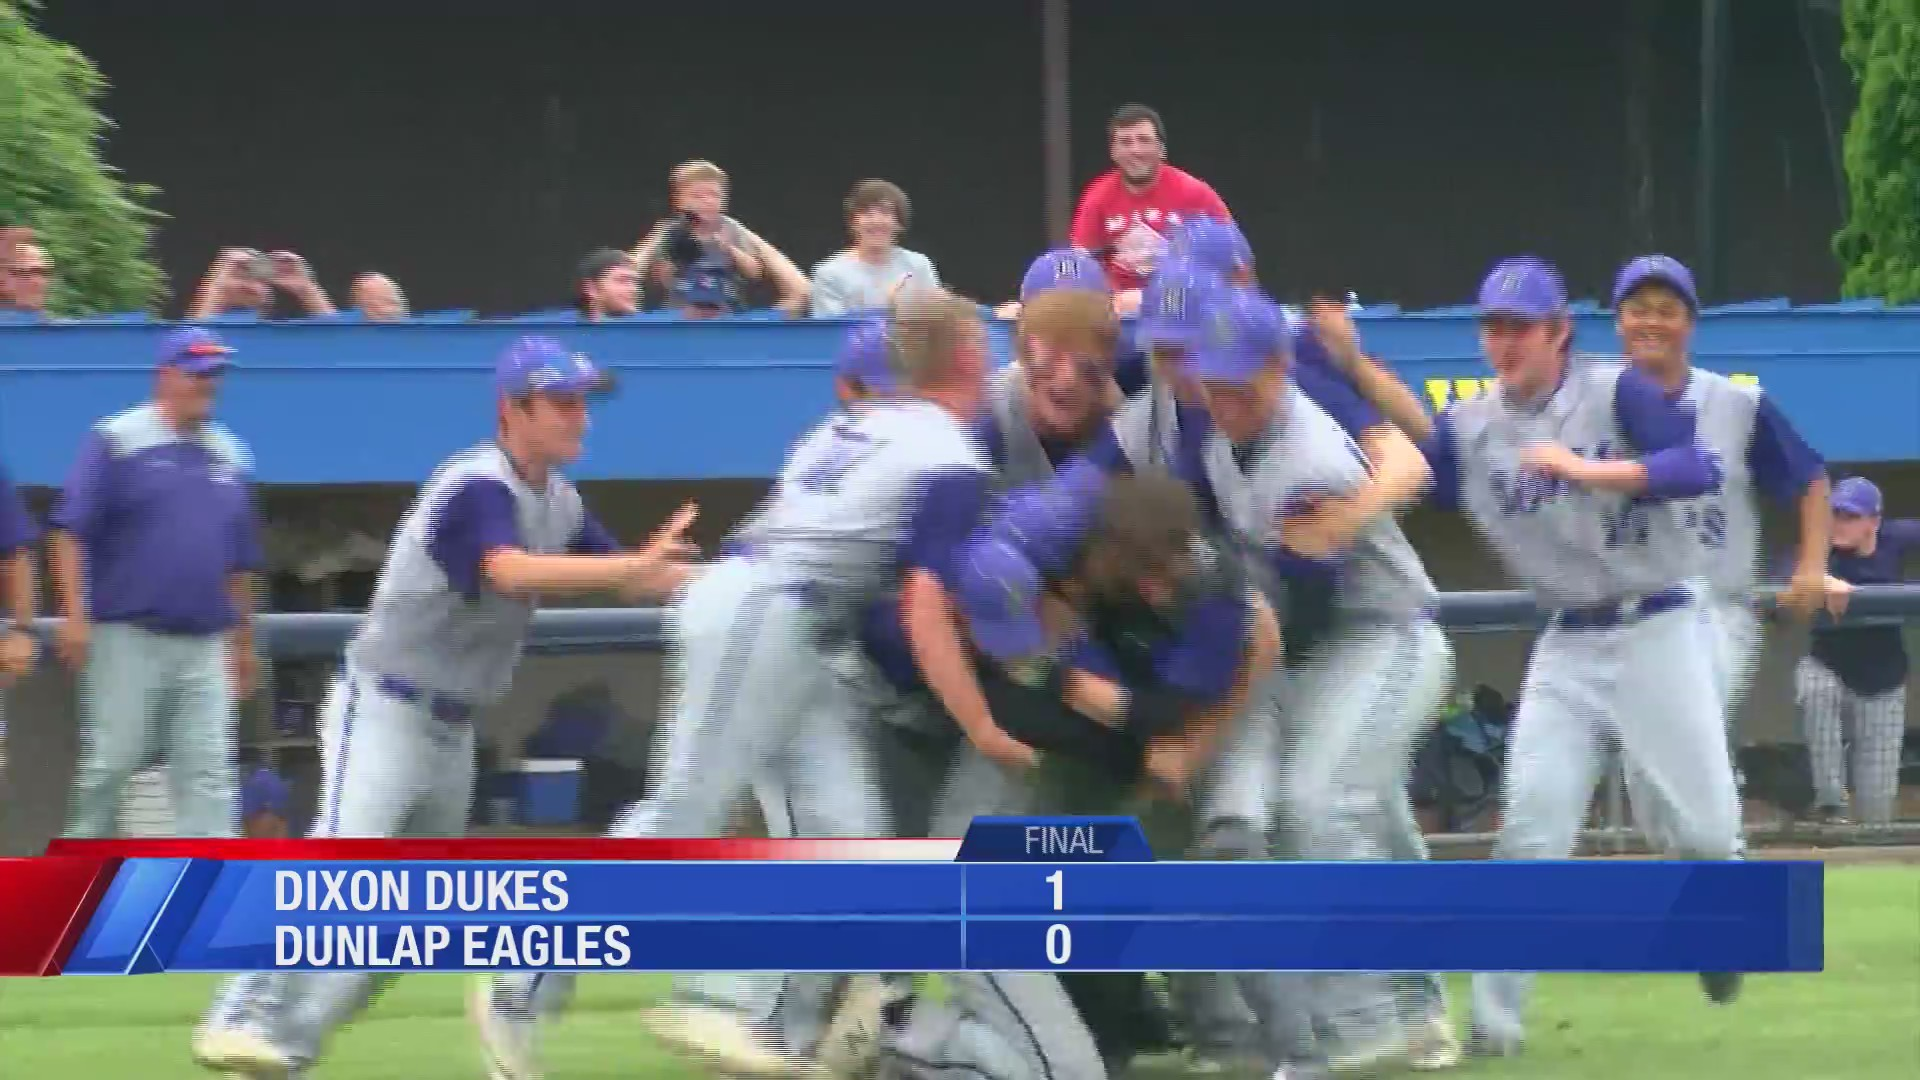 Dixon clinches trip to State with a thrilling 1-0 Super-Sectional win over Dunlap